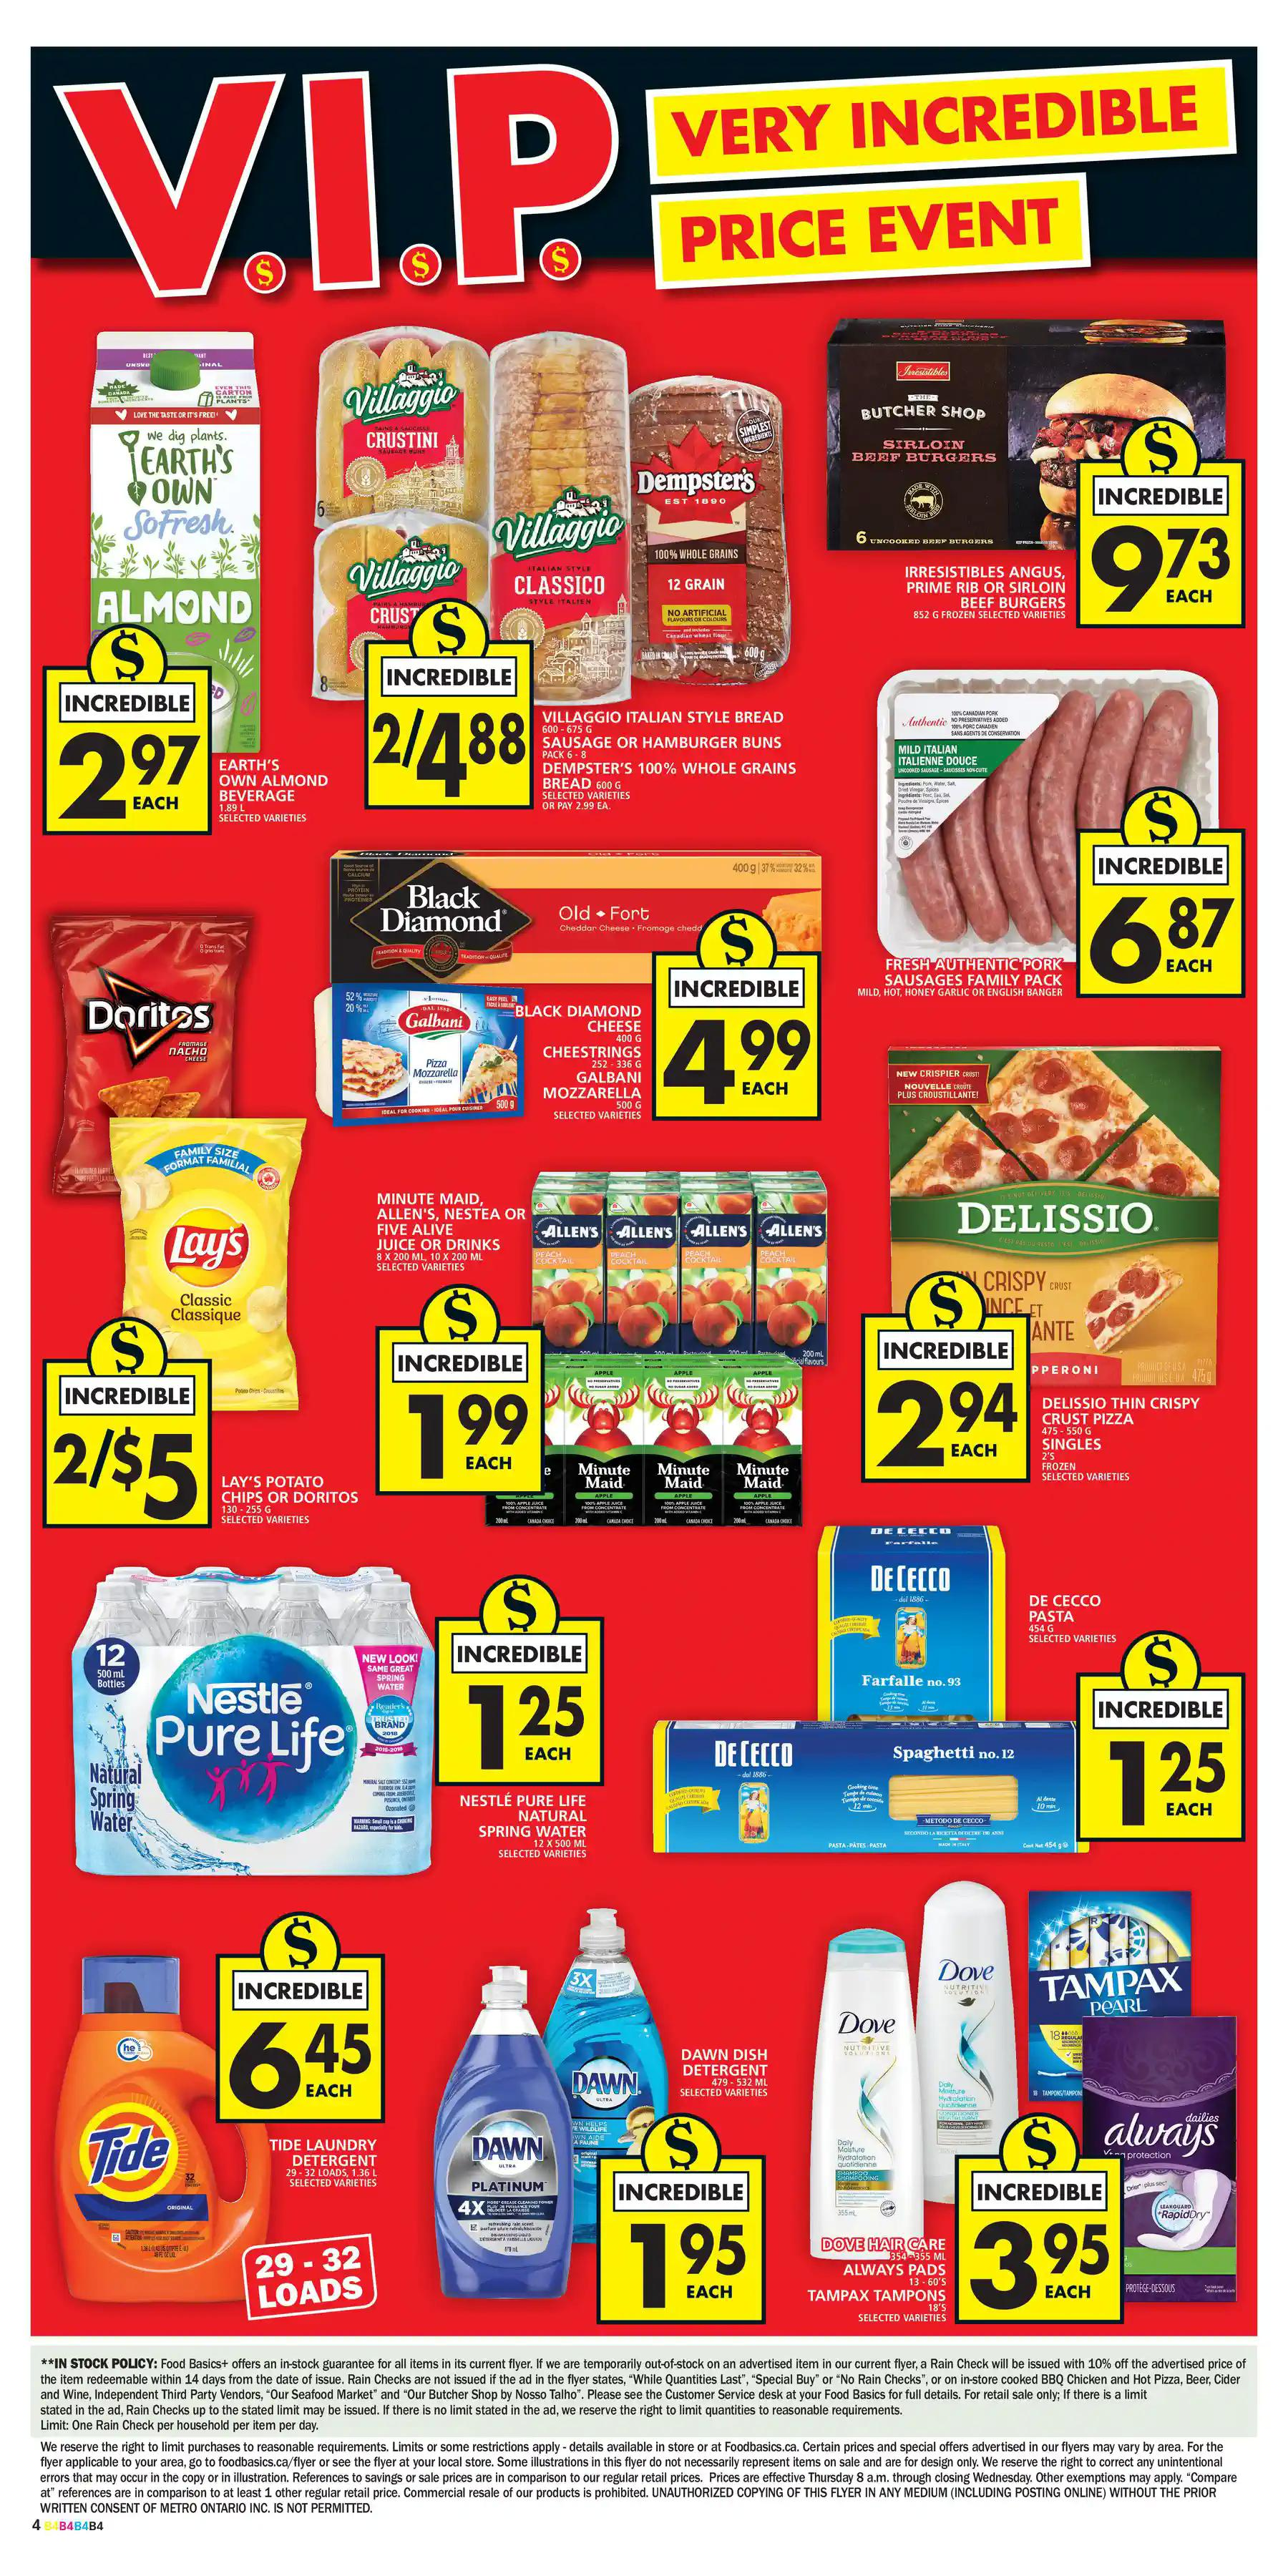 Food Basics - Weekly Flyer Specials - Page 5